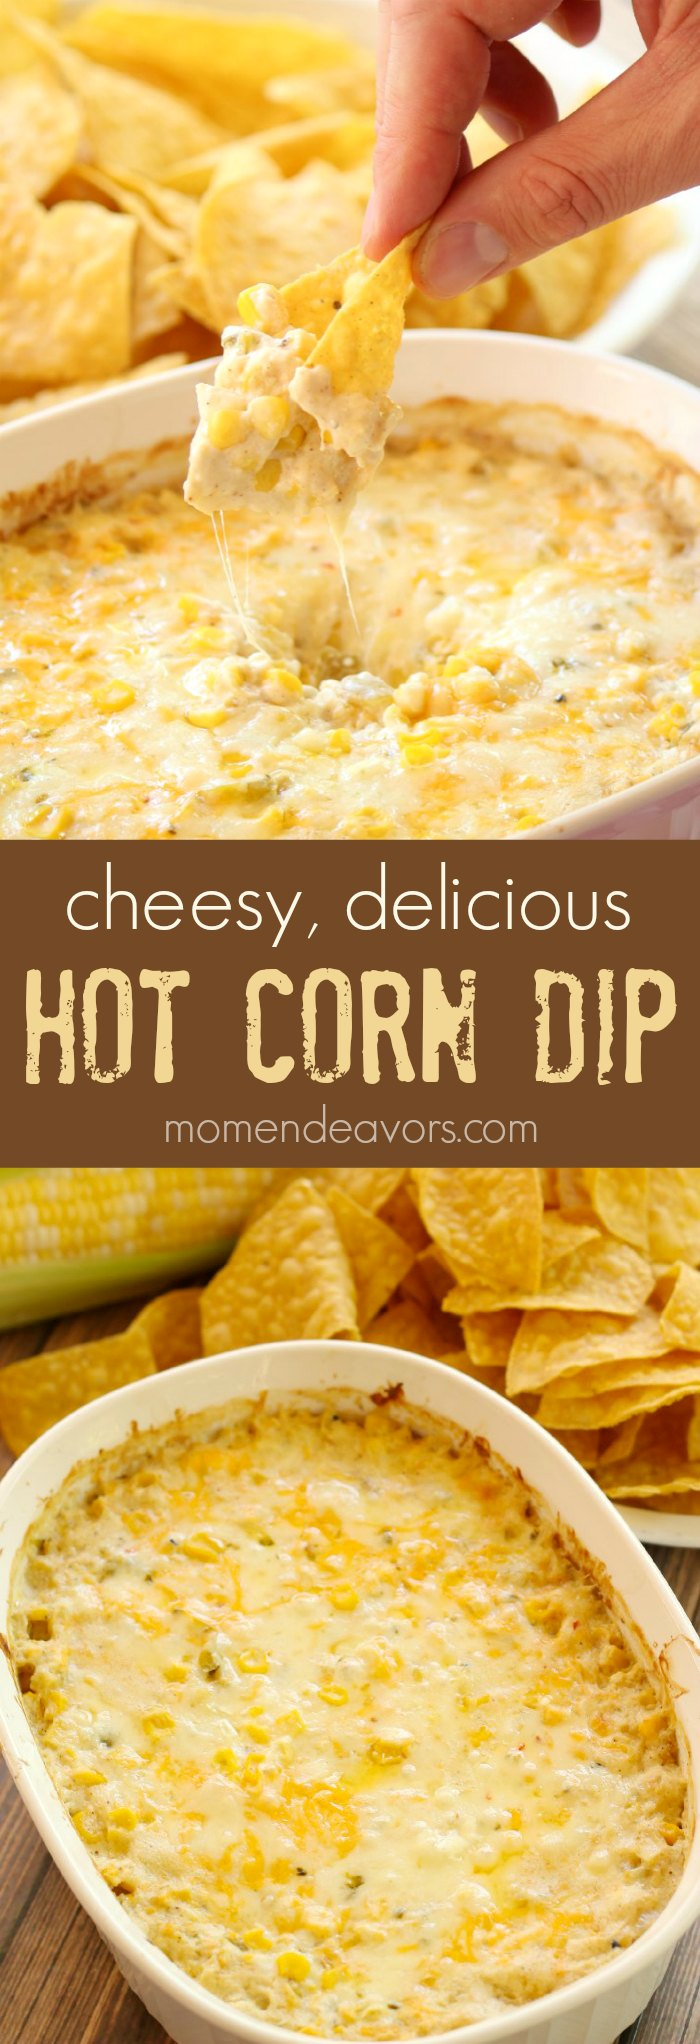 cheesy-hot-corn-dip-recipe